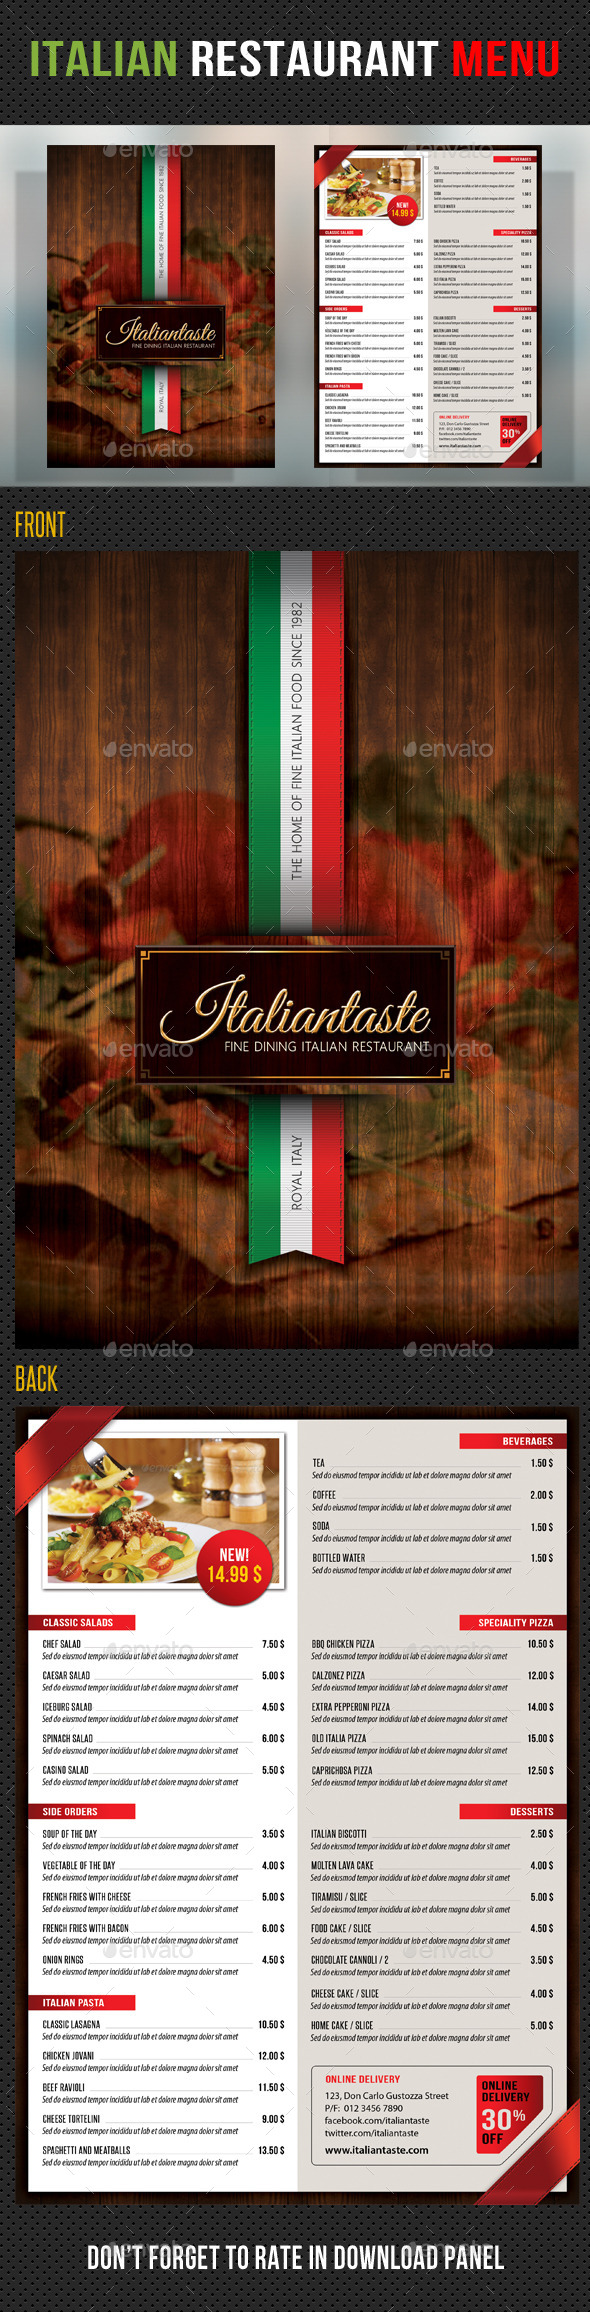 Italian Restaurant Menu Template - Restaurant Flyers